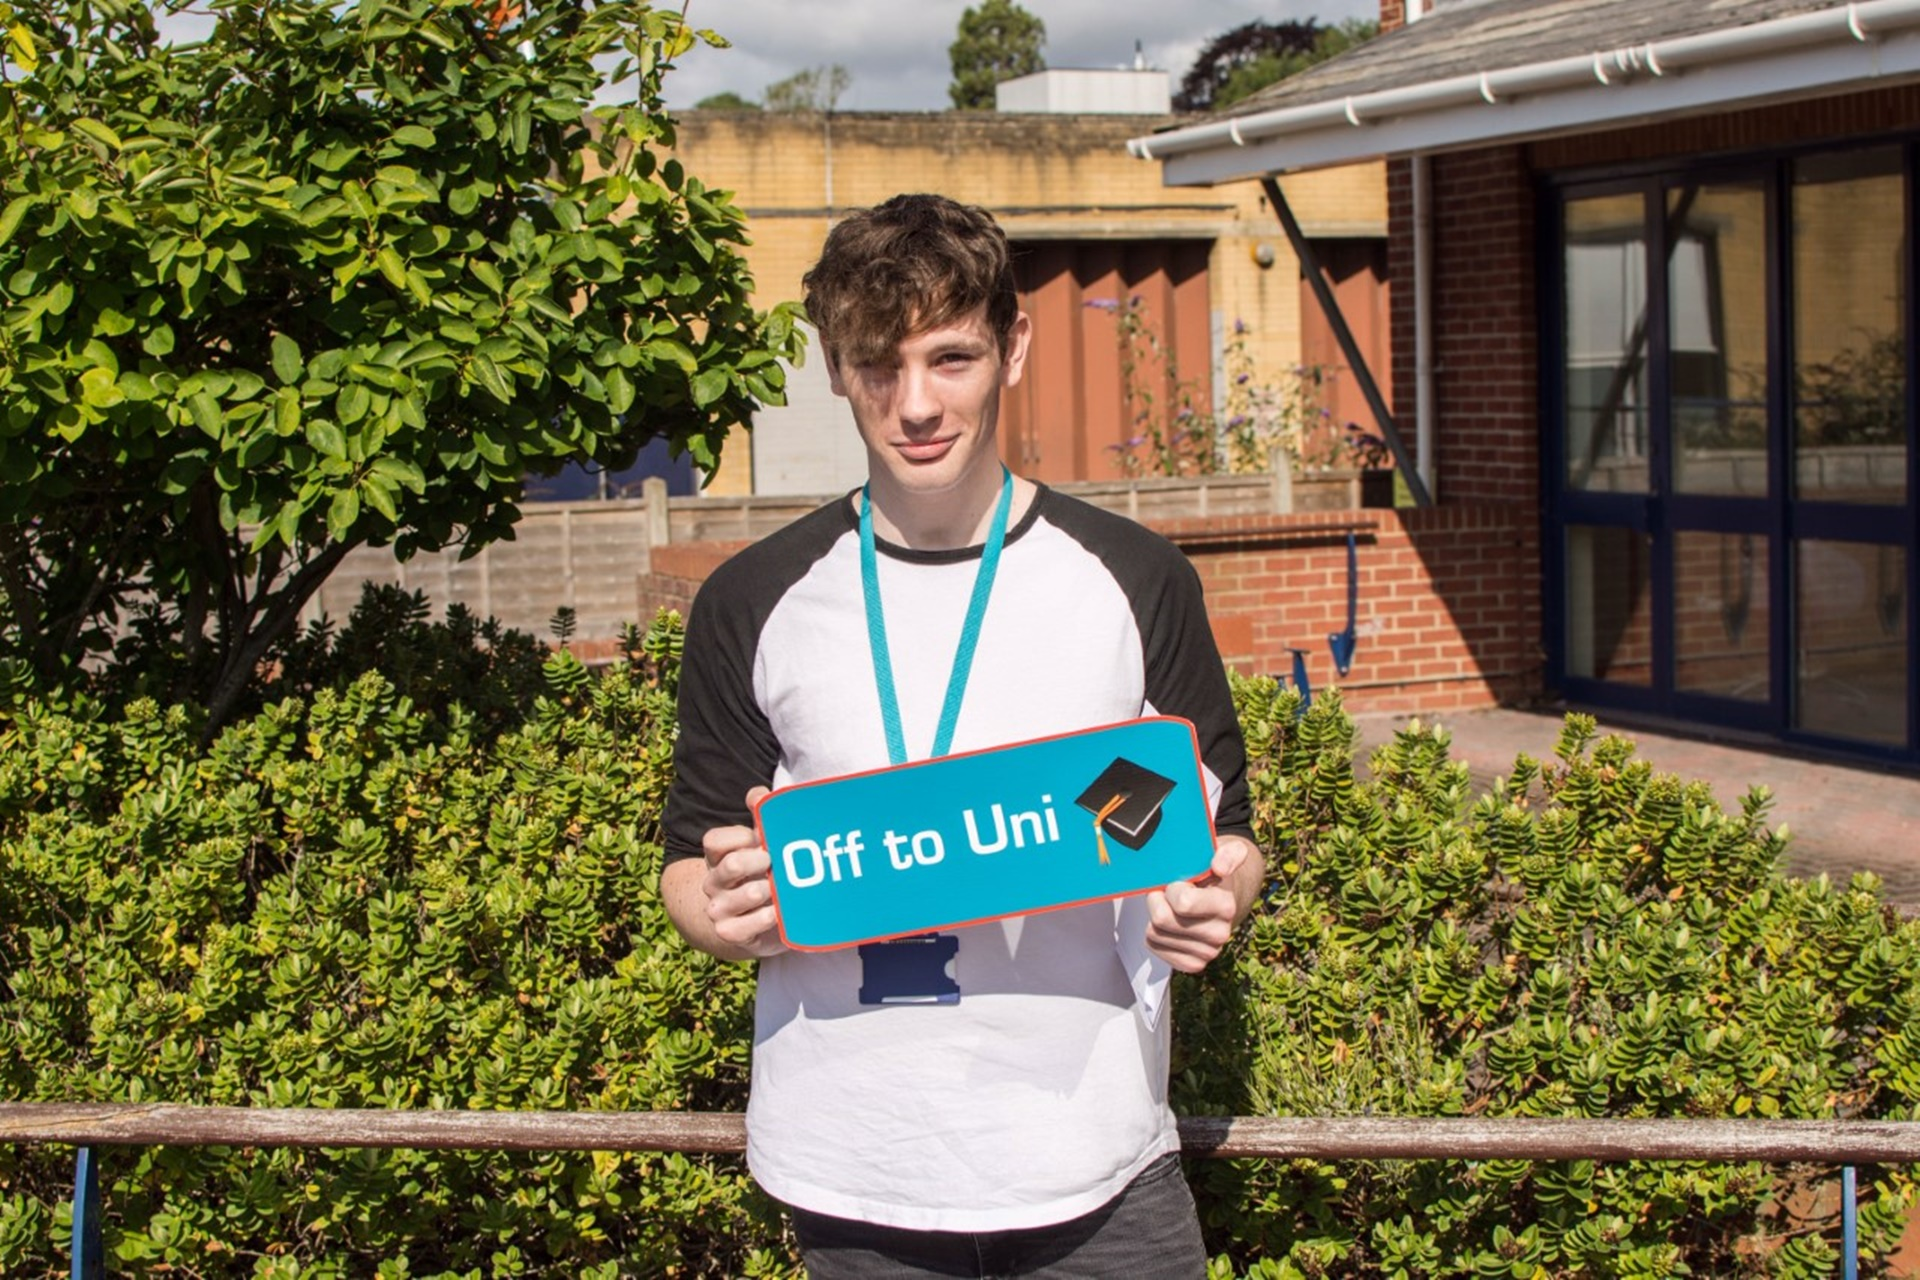 Shae to study biological sciences at University of Southampton